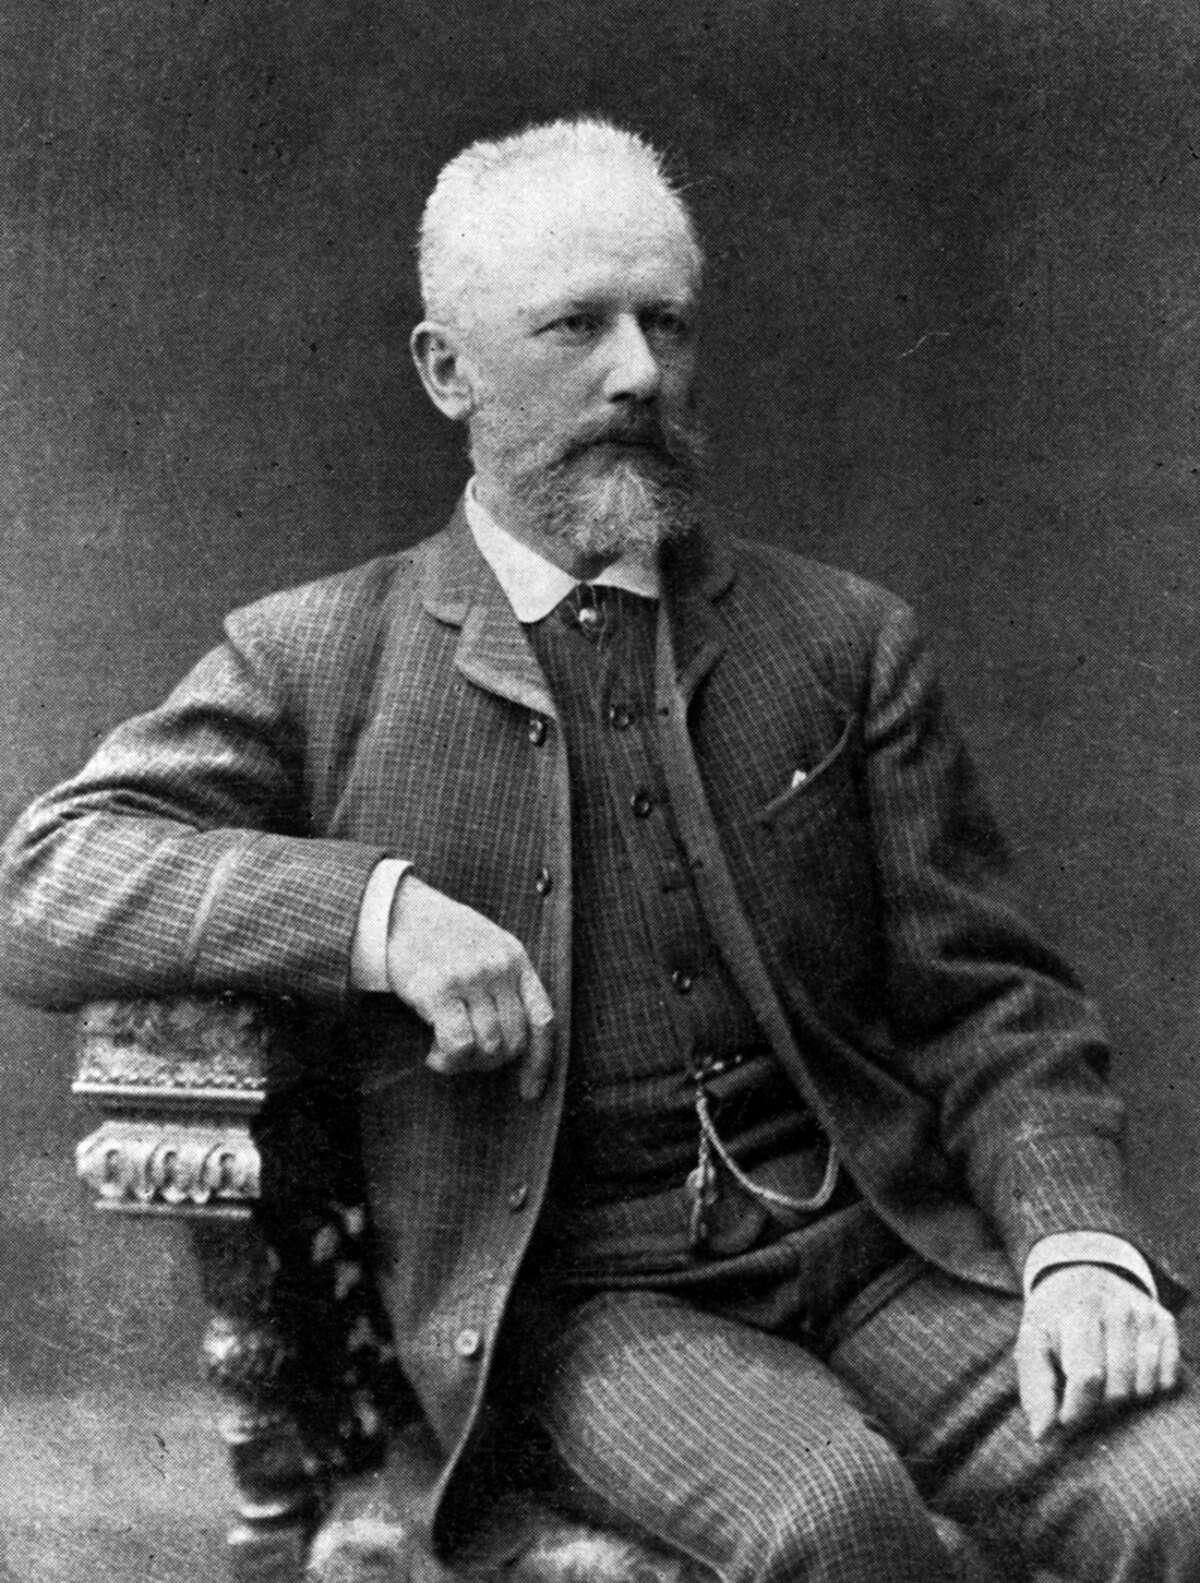 Peter Tchaikovsky's works include six symphonies and three piano concertos, a violin concerto and 11 operas. HULTON ARCHIVE / GETTY IMAGES